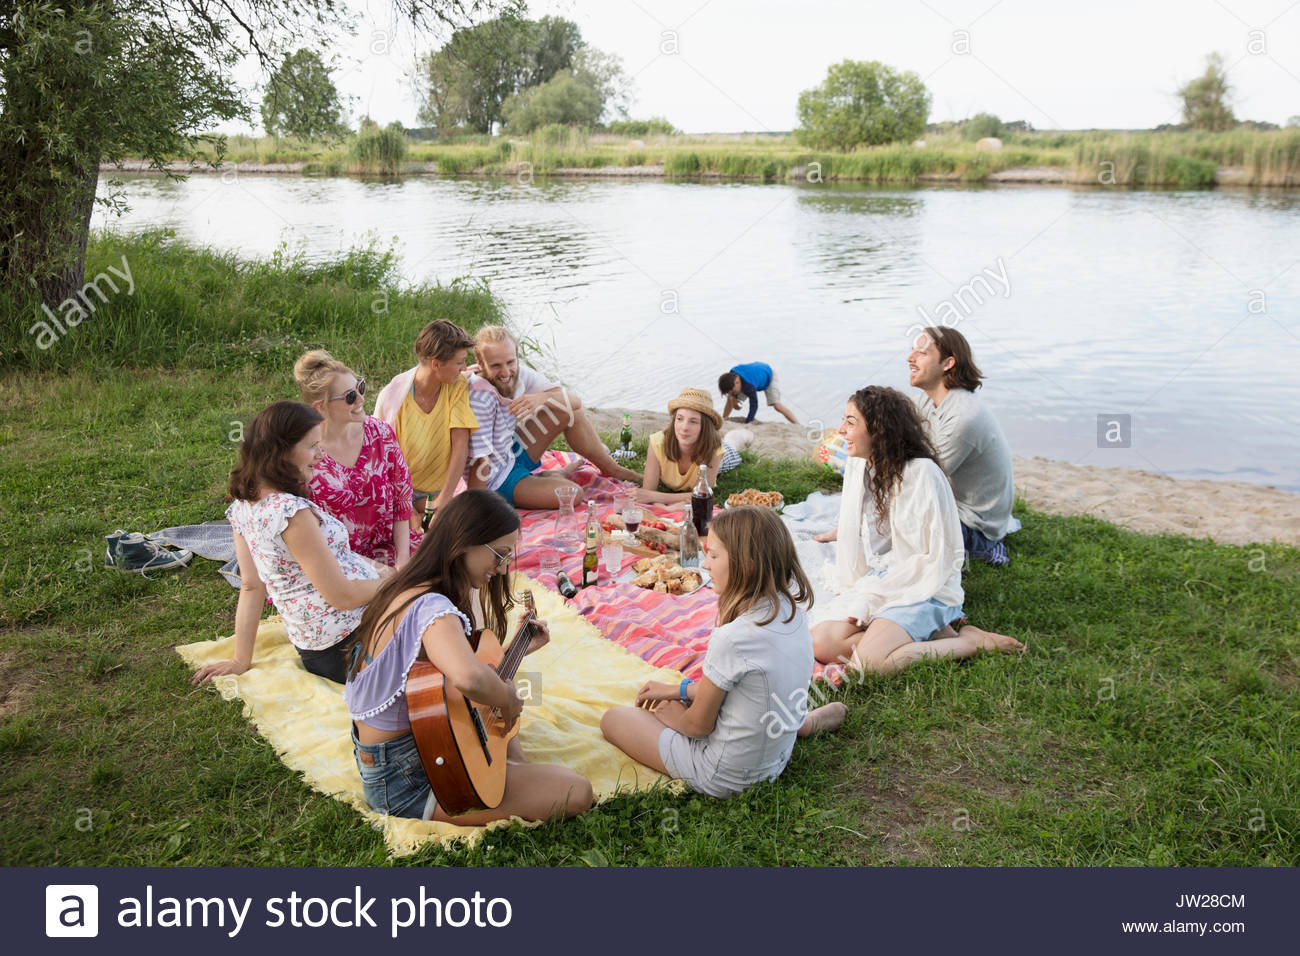 Friends and family relaxing, enjoying summer picnic at lakeside - Stock Image